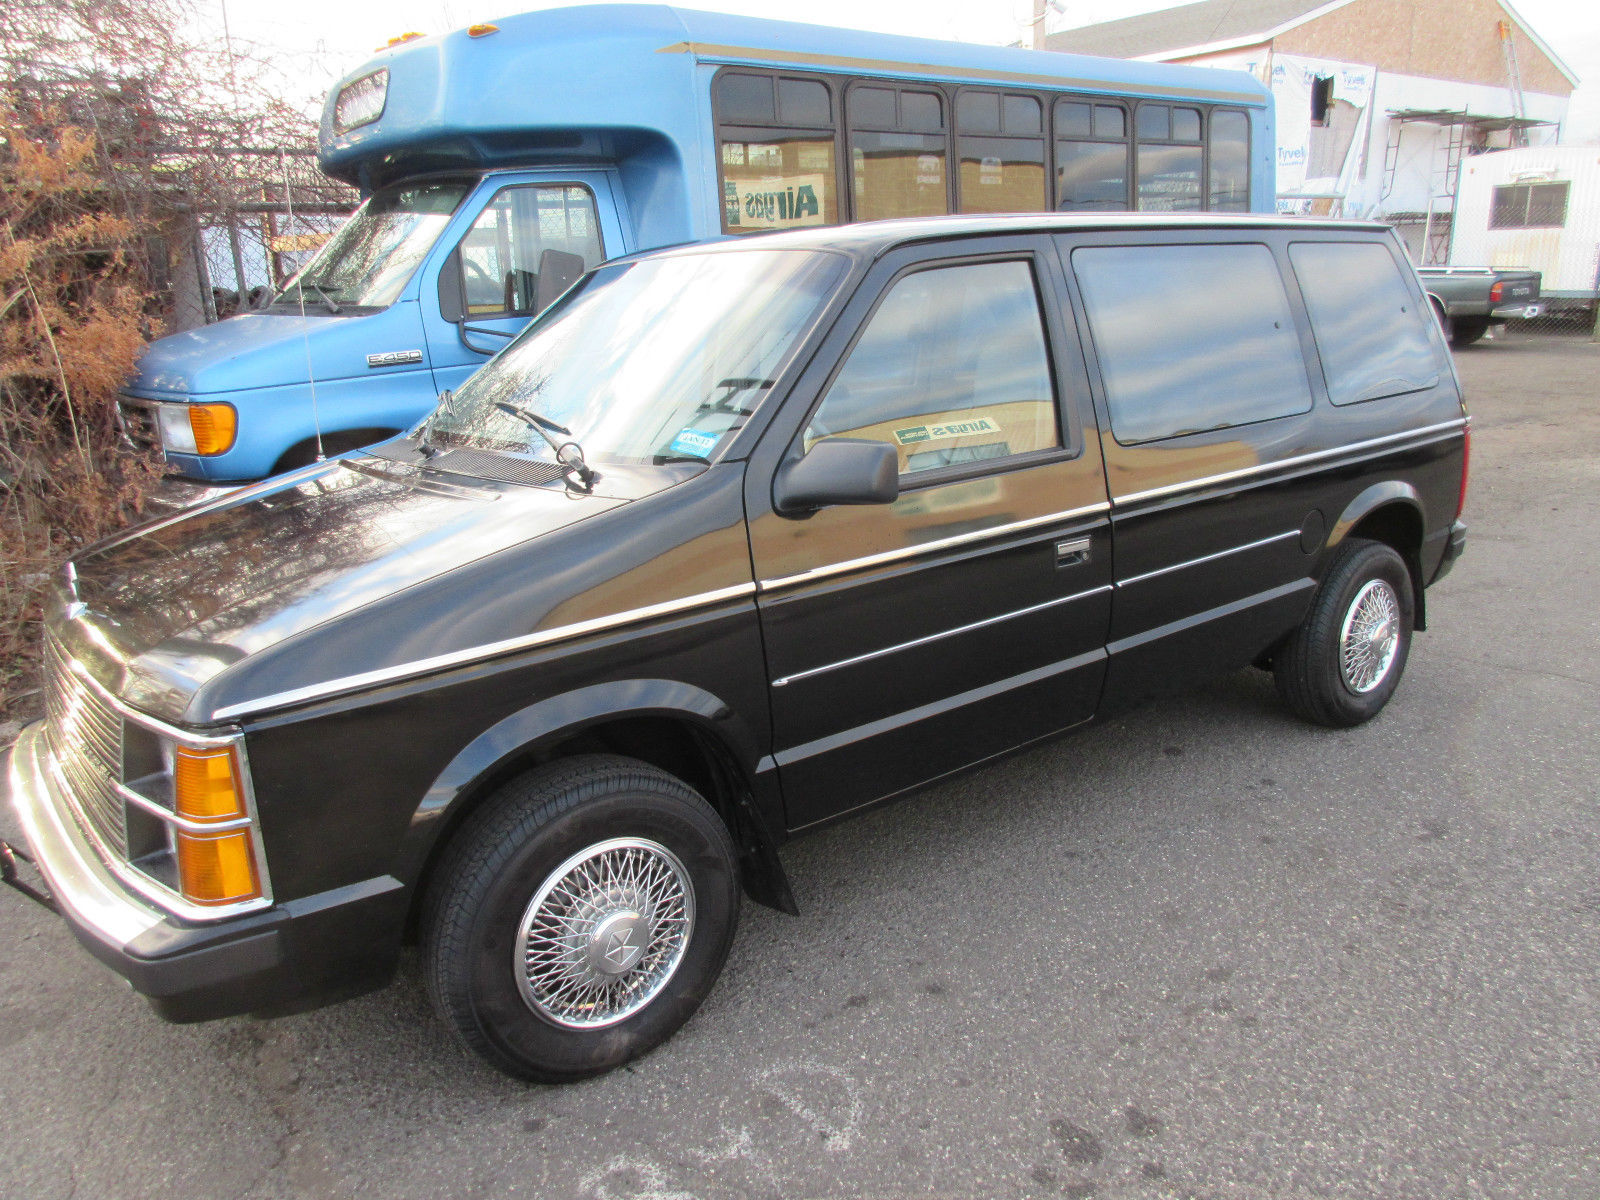 Enterprise Cars For Sale >> 1985 Plymouth Voyager **Super Clean** - Classic Plymouth Voyager 1985 for sale